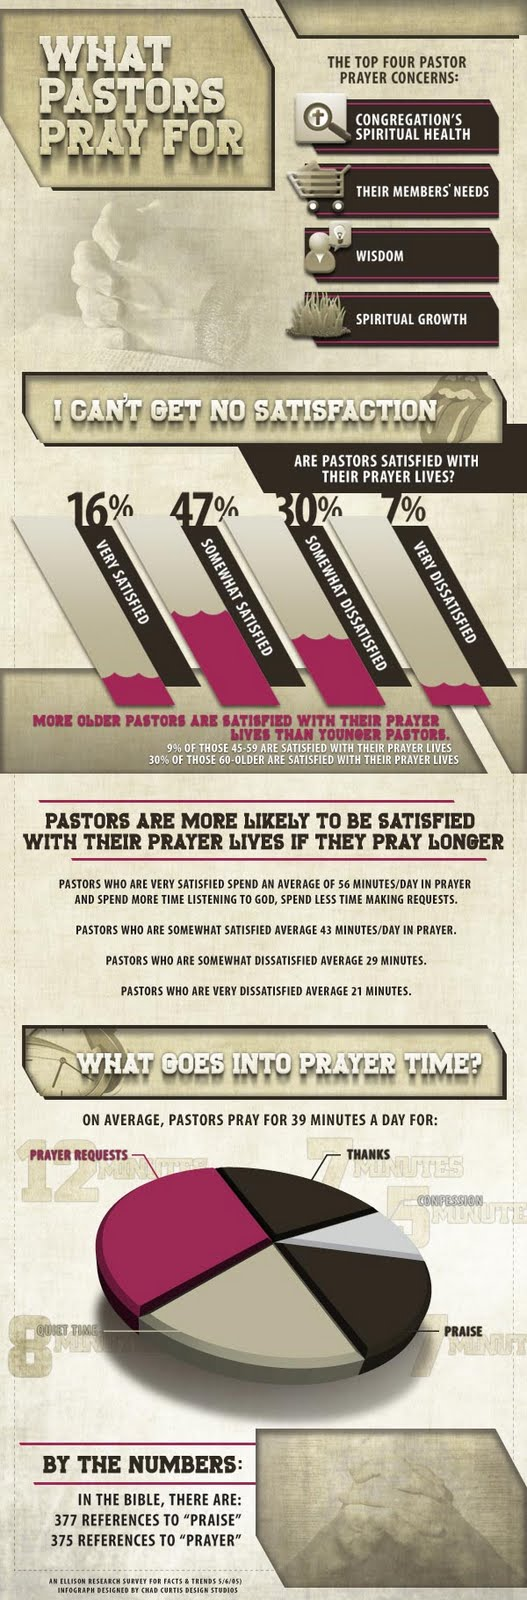 Best 400+ Online Resources For Pastoral Ministry